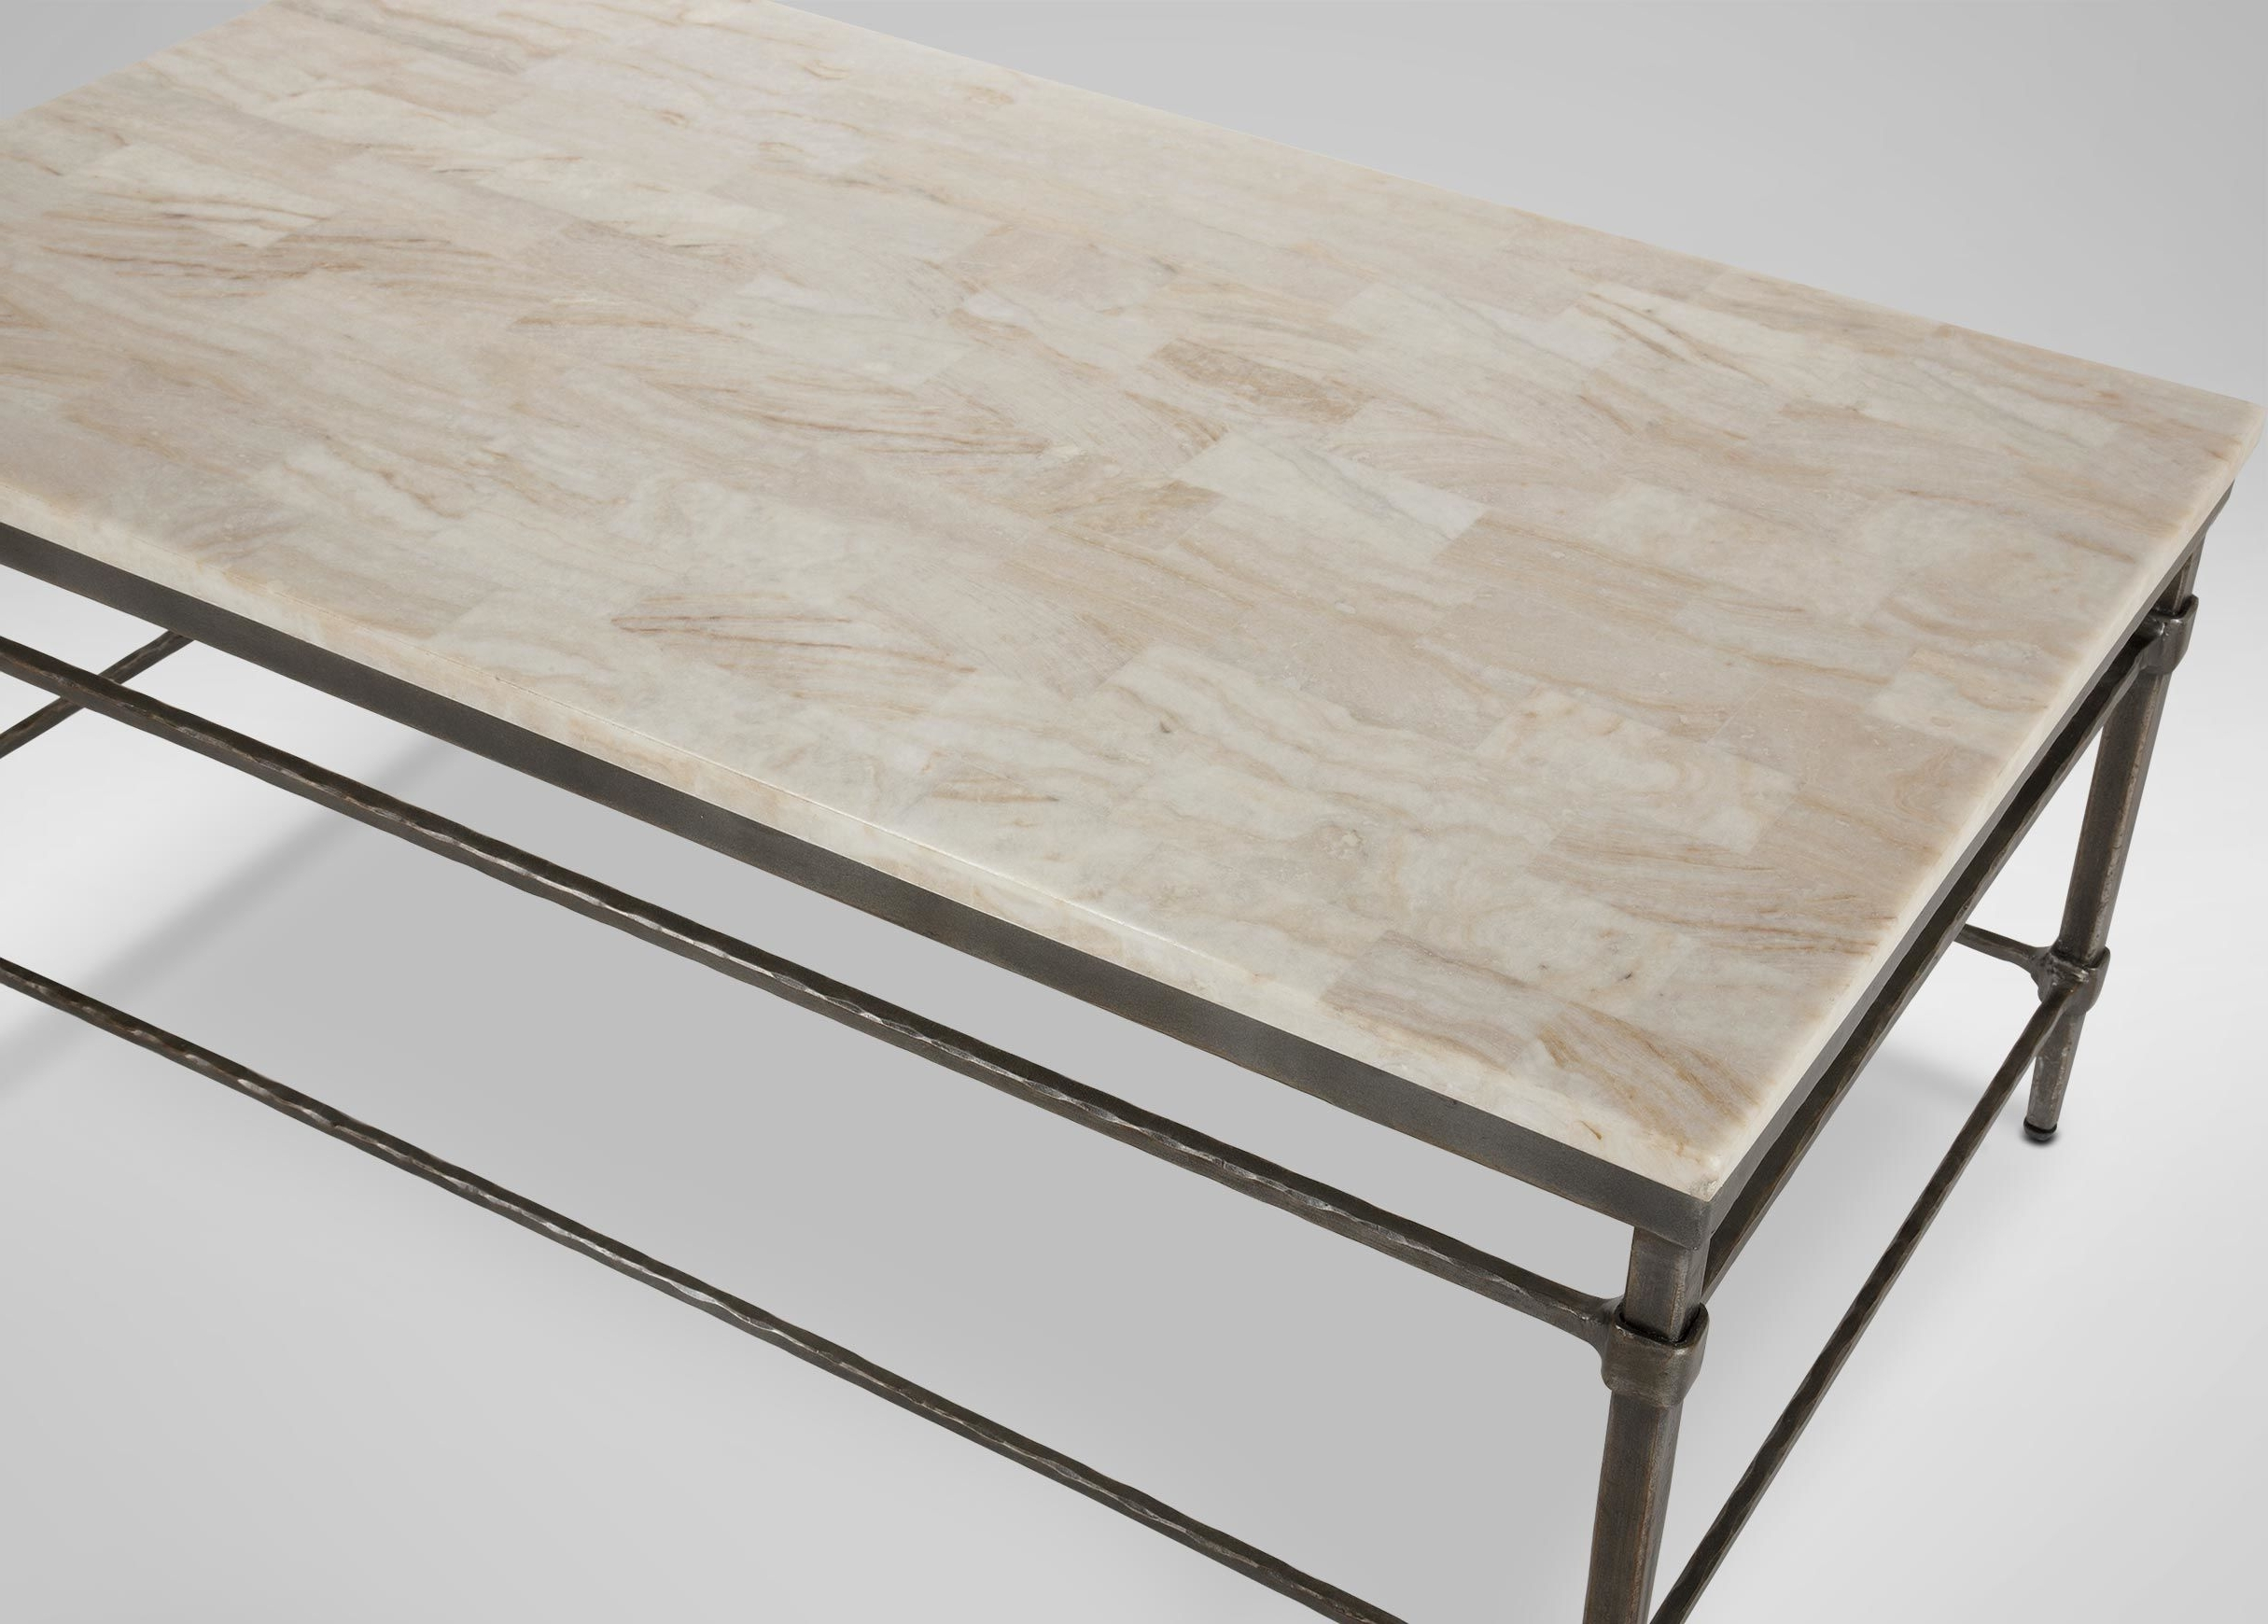 Epic Stone Top Coffee Table Mesmerizing Decoration Ideas With Table Pertaining To Current Stone Top Coffee Tables (View 8 of 20)